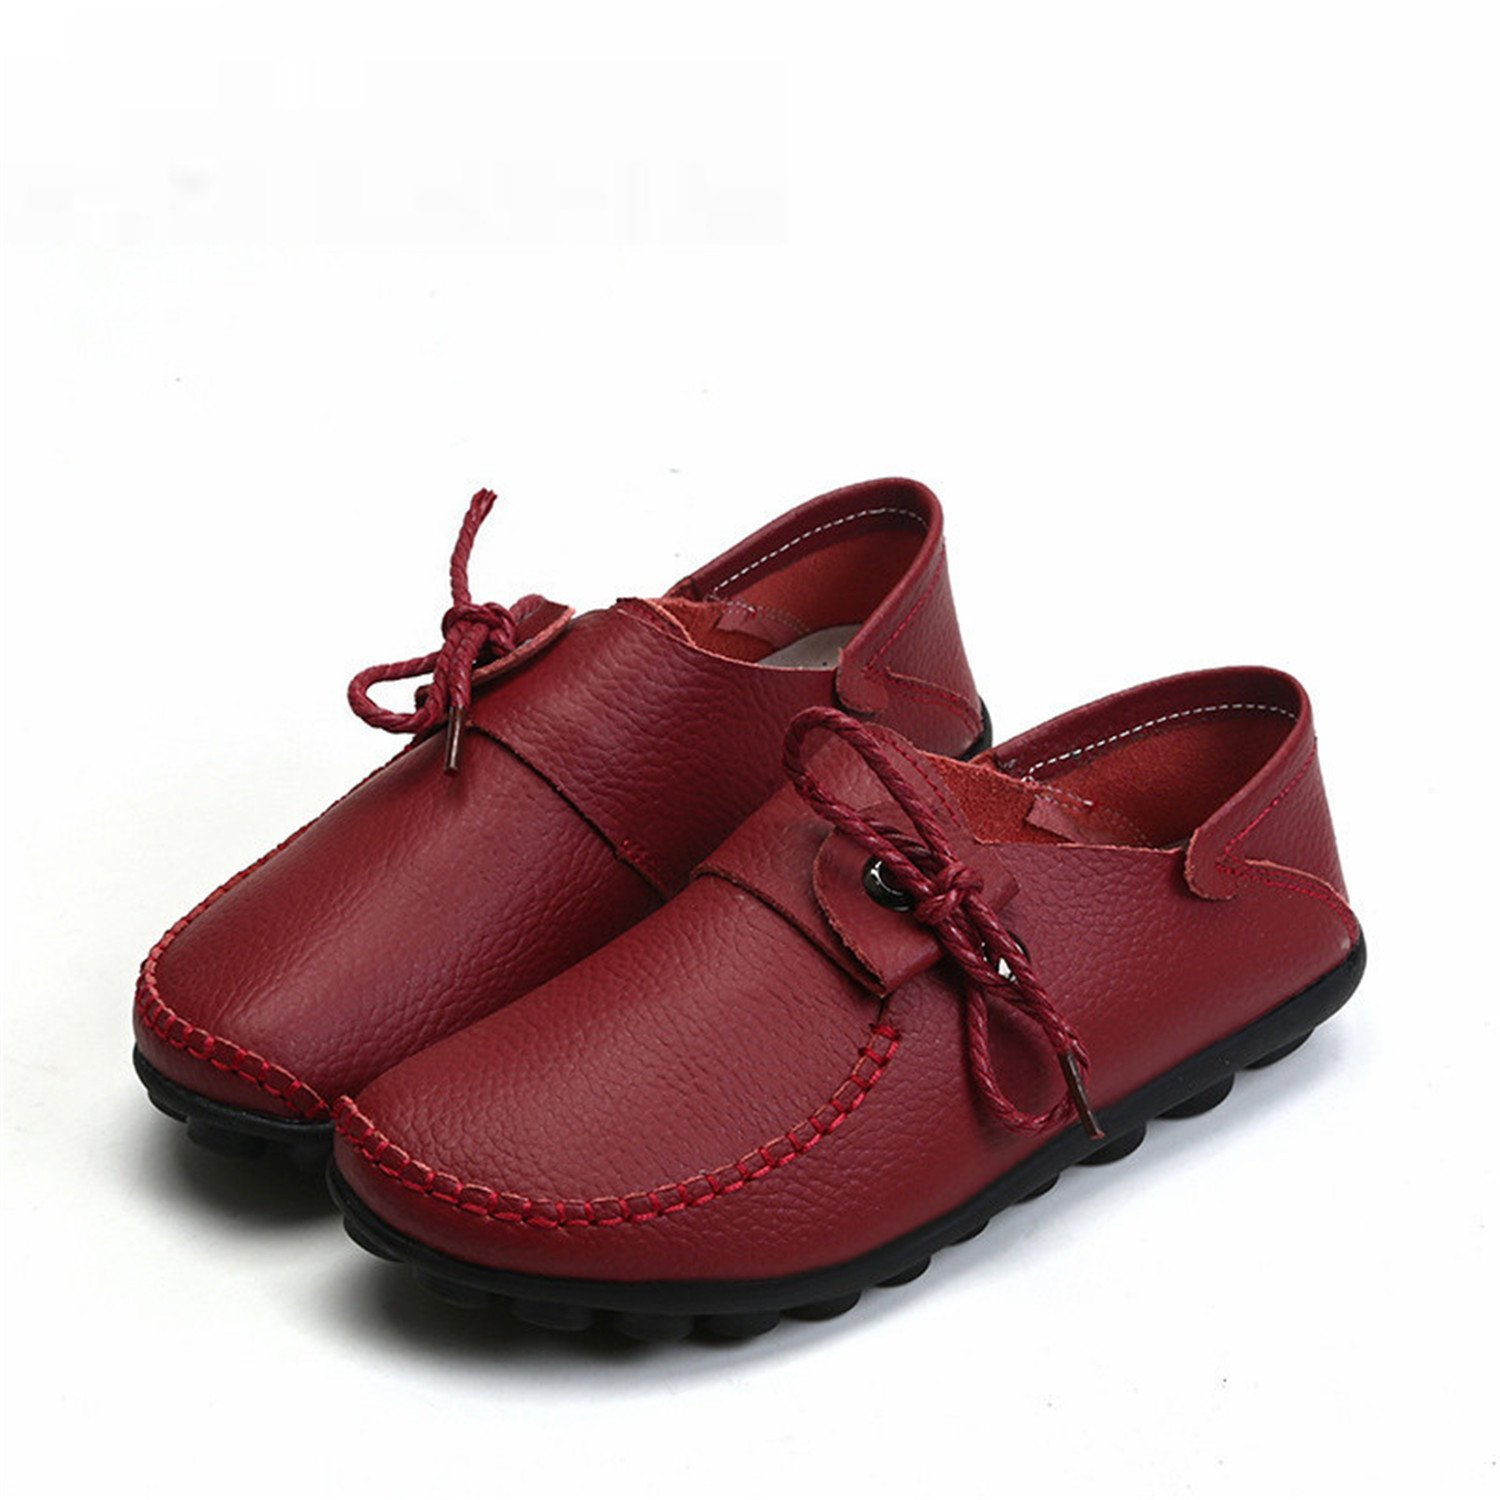 Feilongzaitianba Cow Leather Women's Casual Shoes Moccasins Female Flats Shoe Lace-Up Woman Loafers Driving Shoe Size 35-43